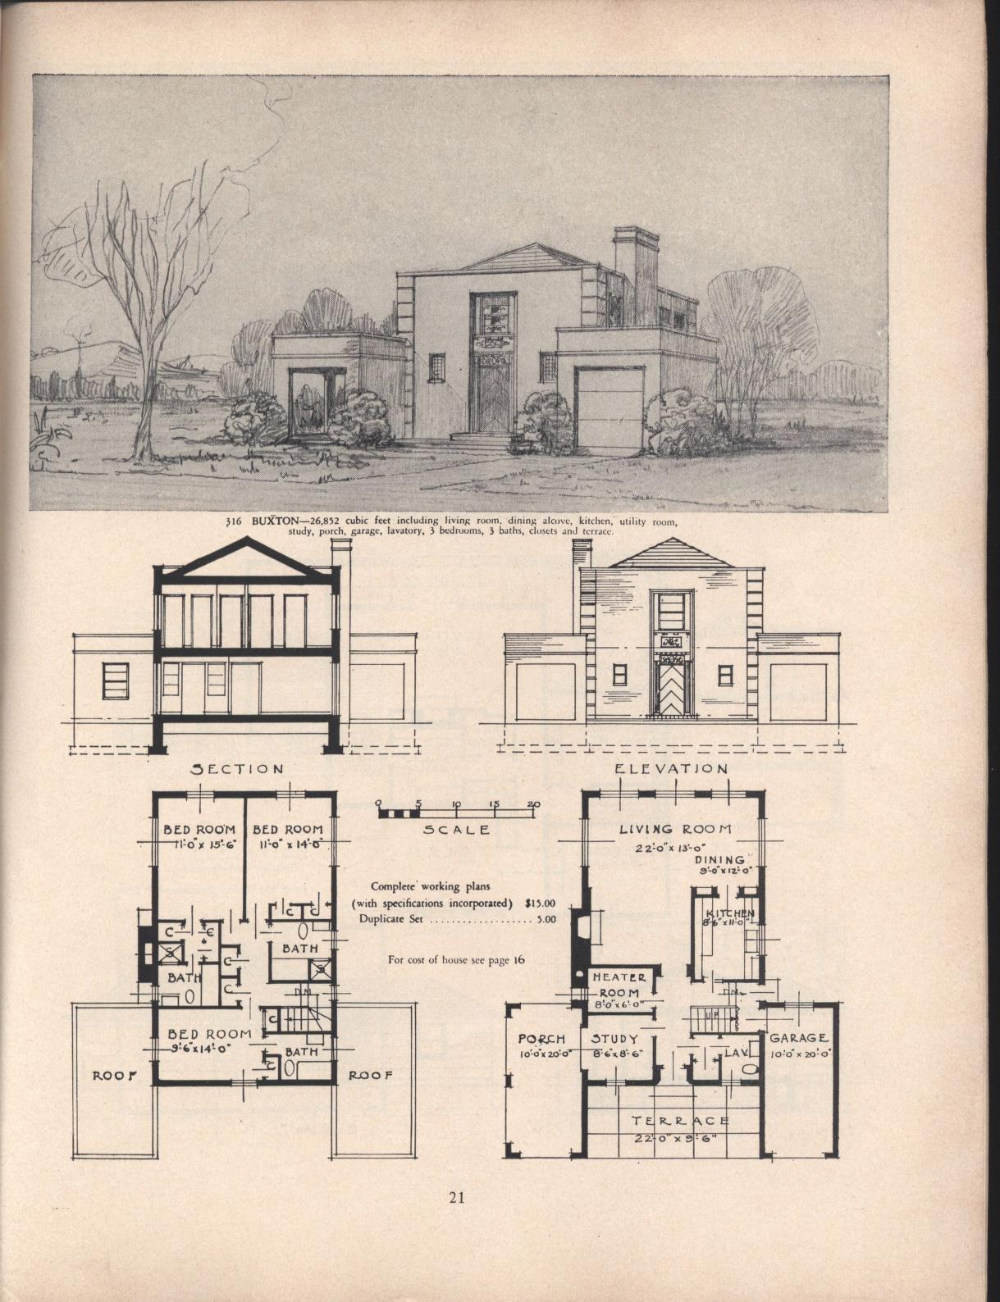 Latest Book Of New Homes A House For Every Budget Authentic Publications Inc Free Download Borrow And Streaming Internet Archive House Plans Vintage House Plans House